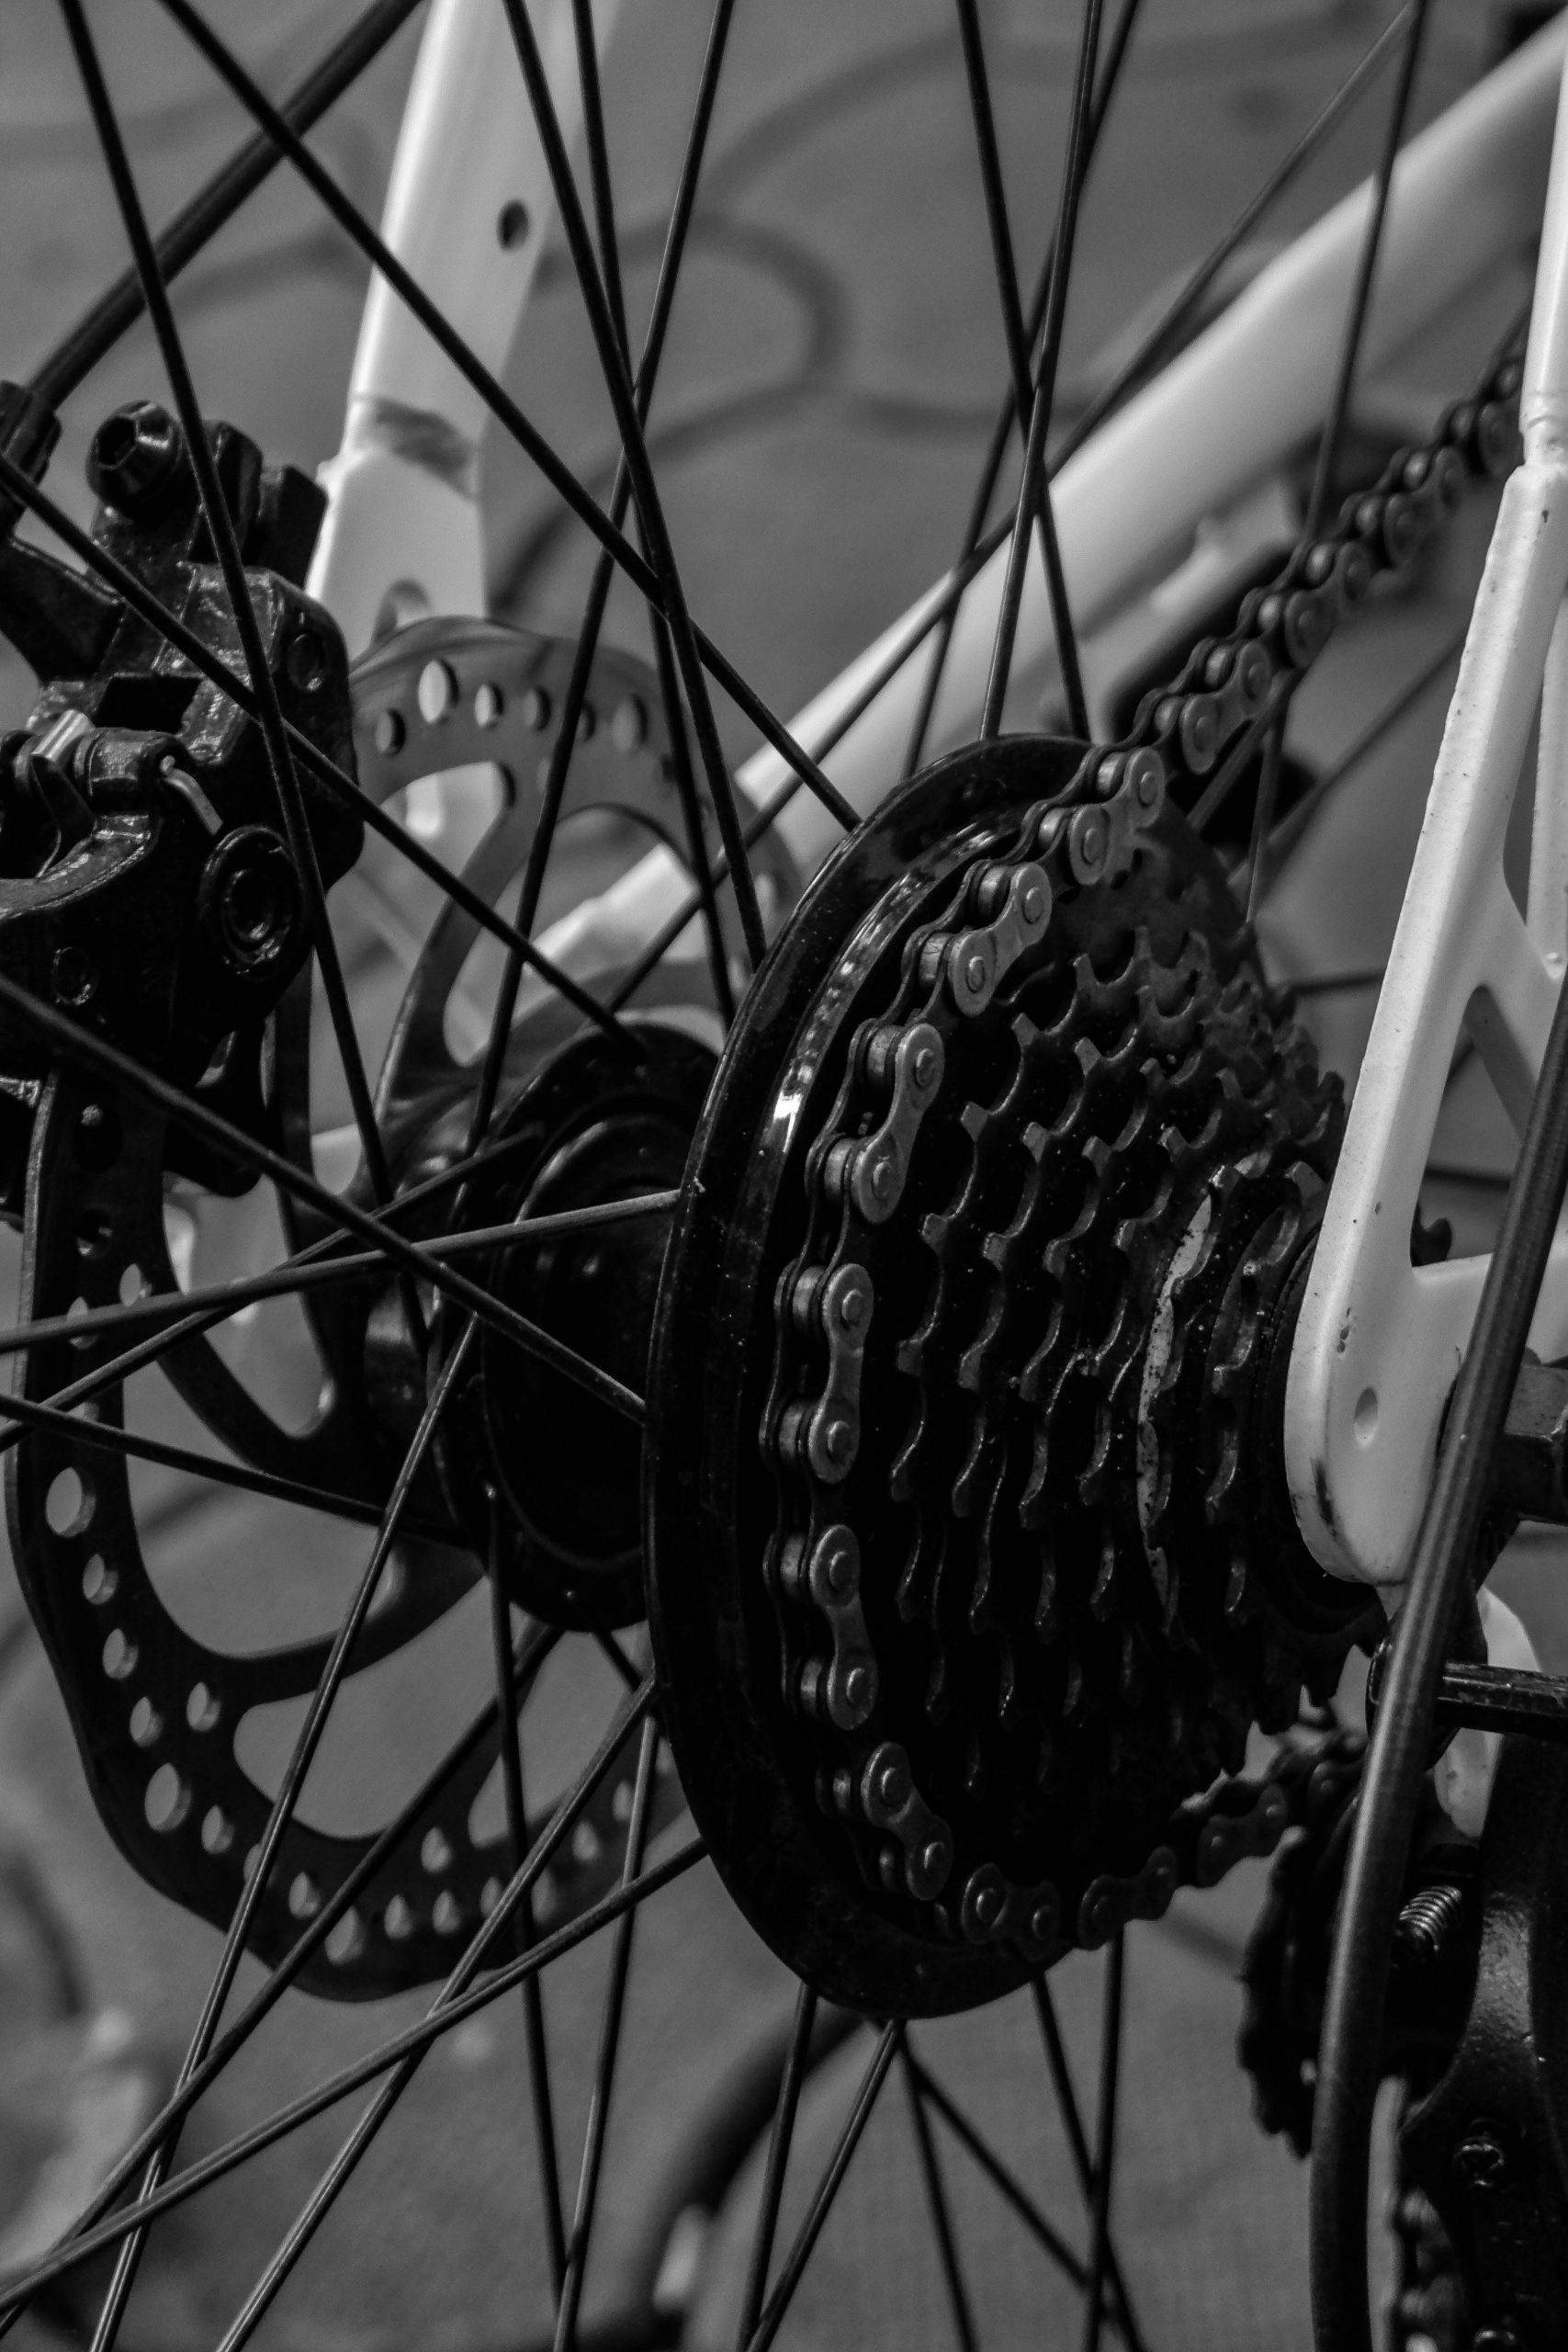 Cycle Gears and chain